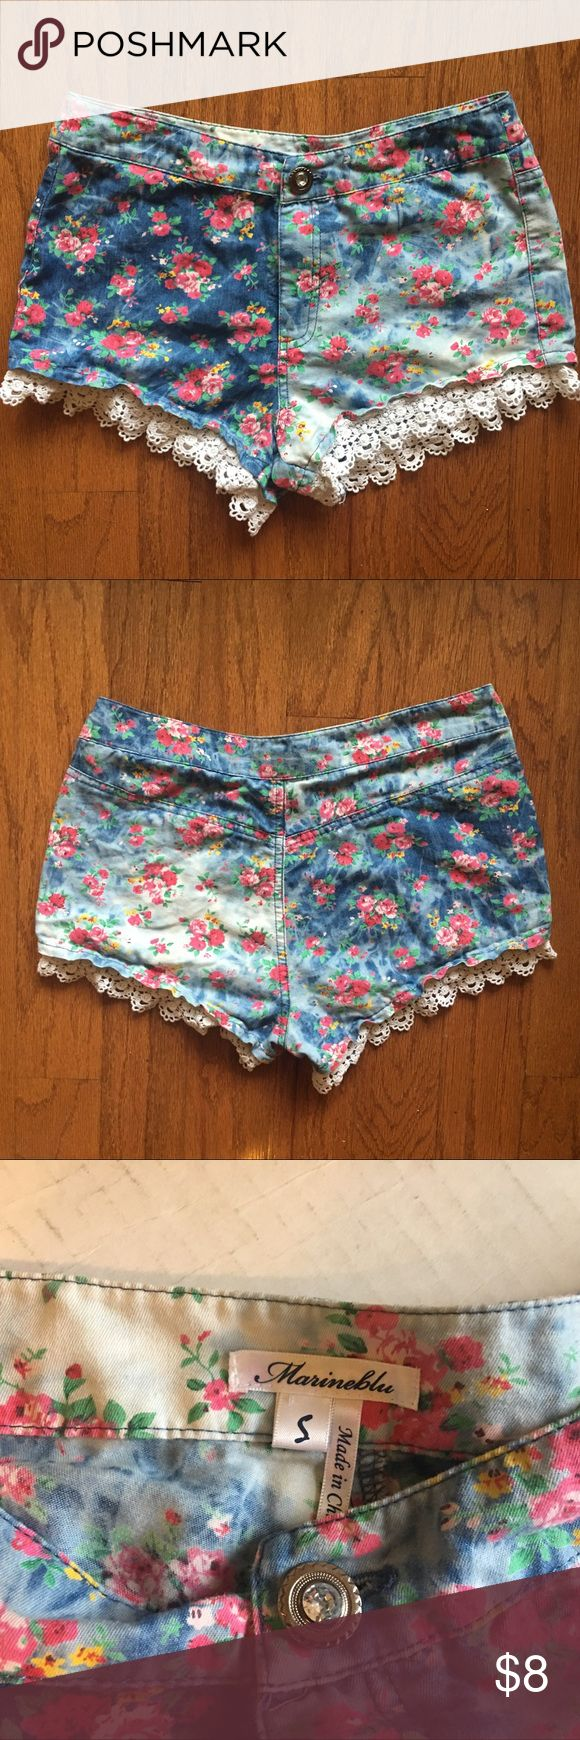 Floral Laced Trimmed Shorts Floral print cotton lace Trimmed Shorts. These shorts are very soft. Very Comfortable. Marineblu Shorts